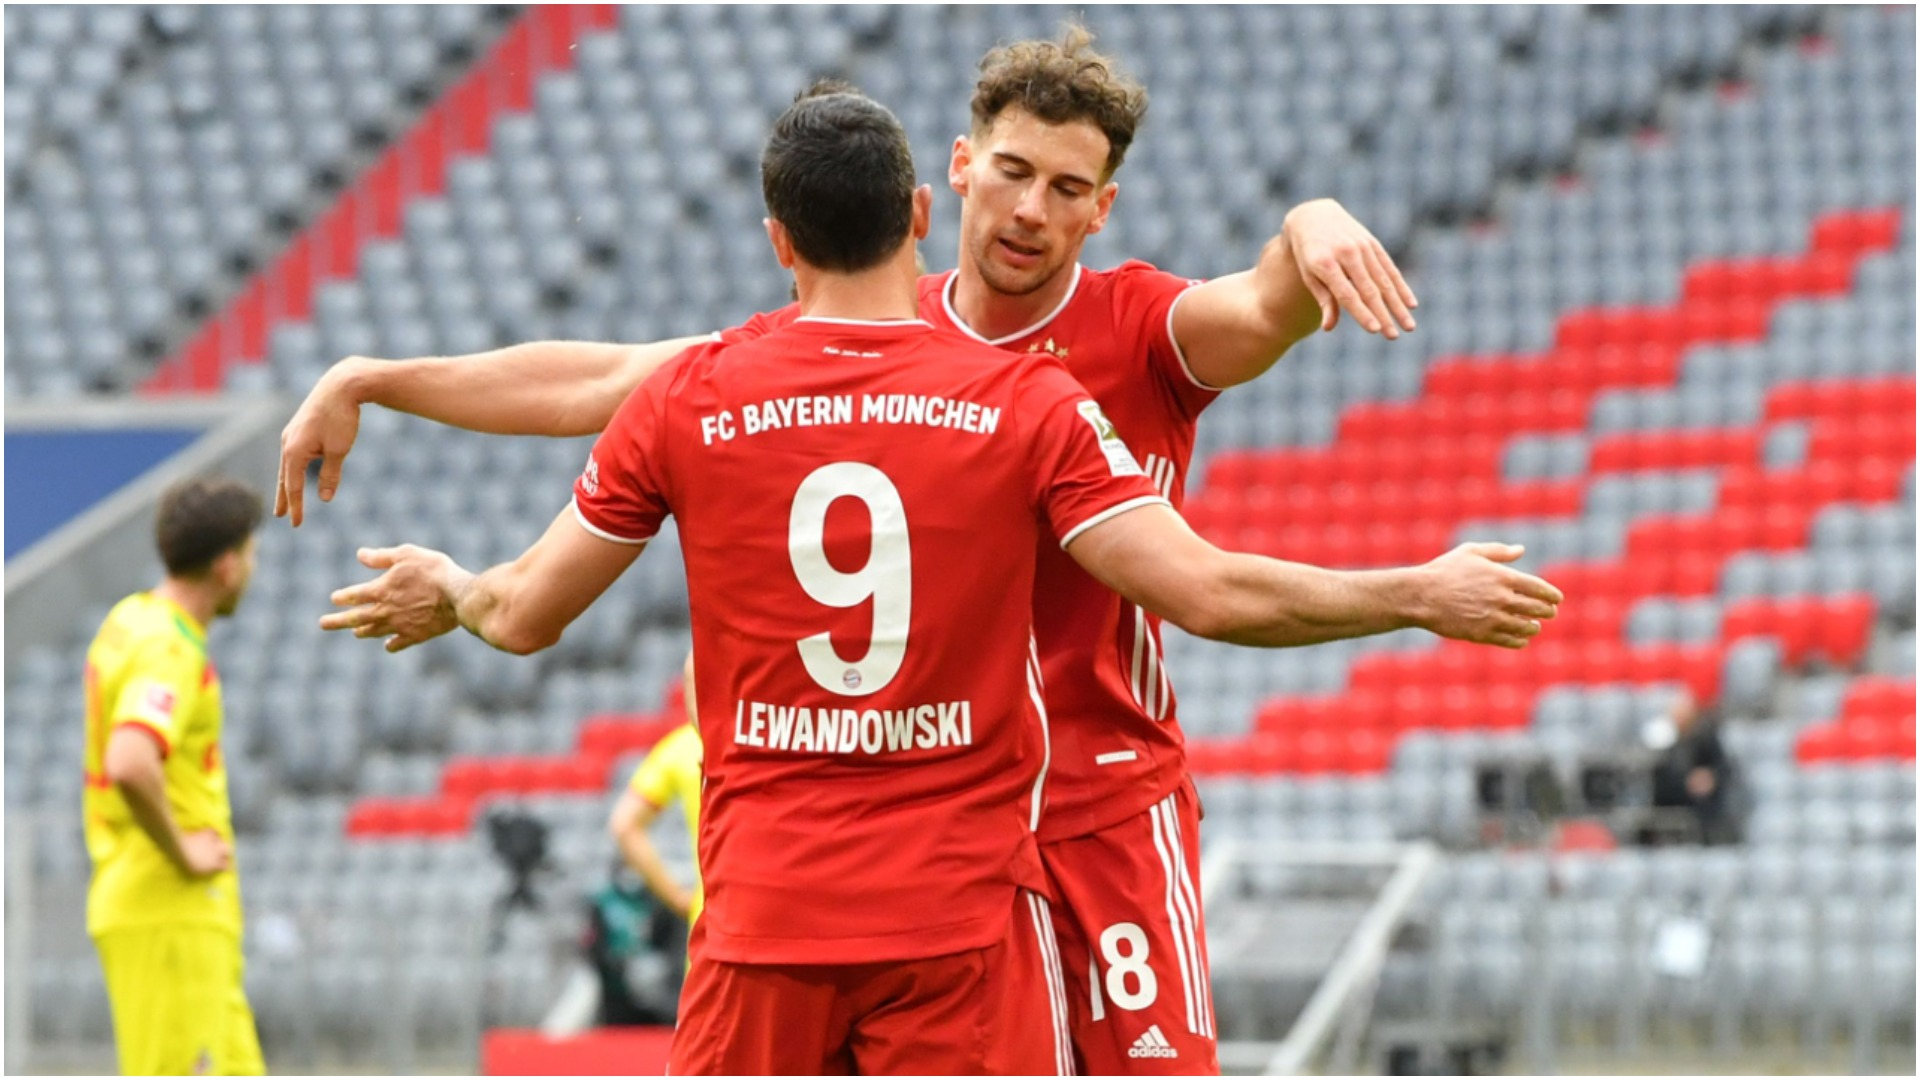 Bayern Munich 5-1 Cologne: Lewandowski and Gnabry at the double as Muller returns